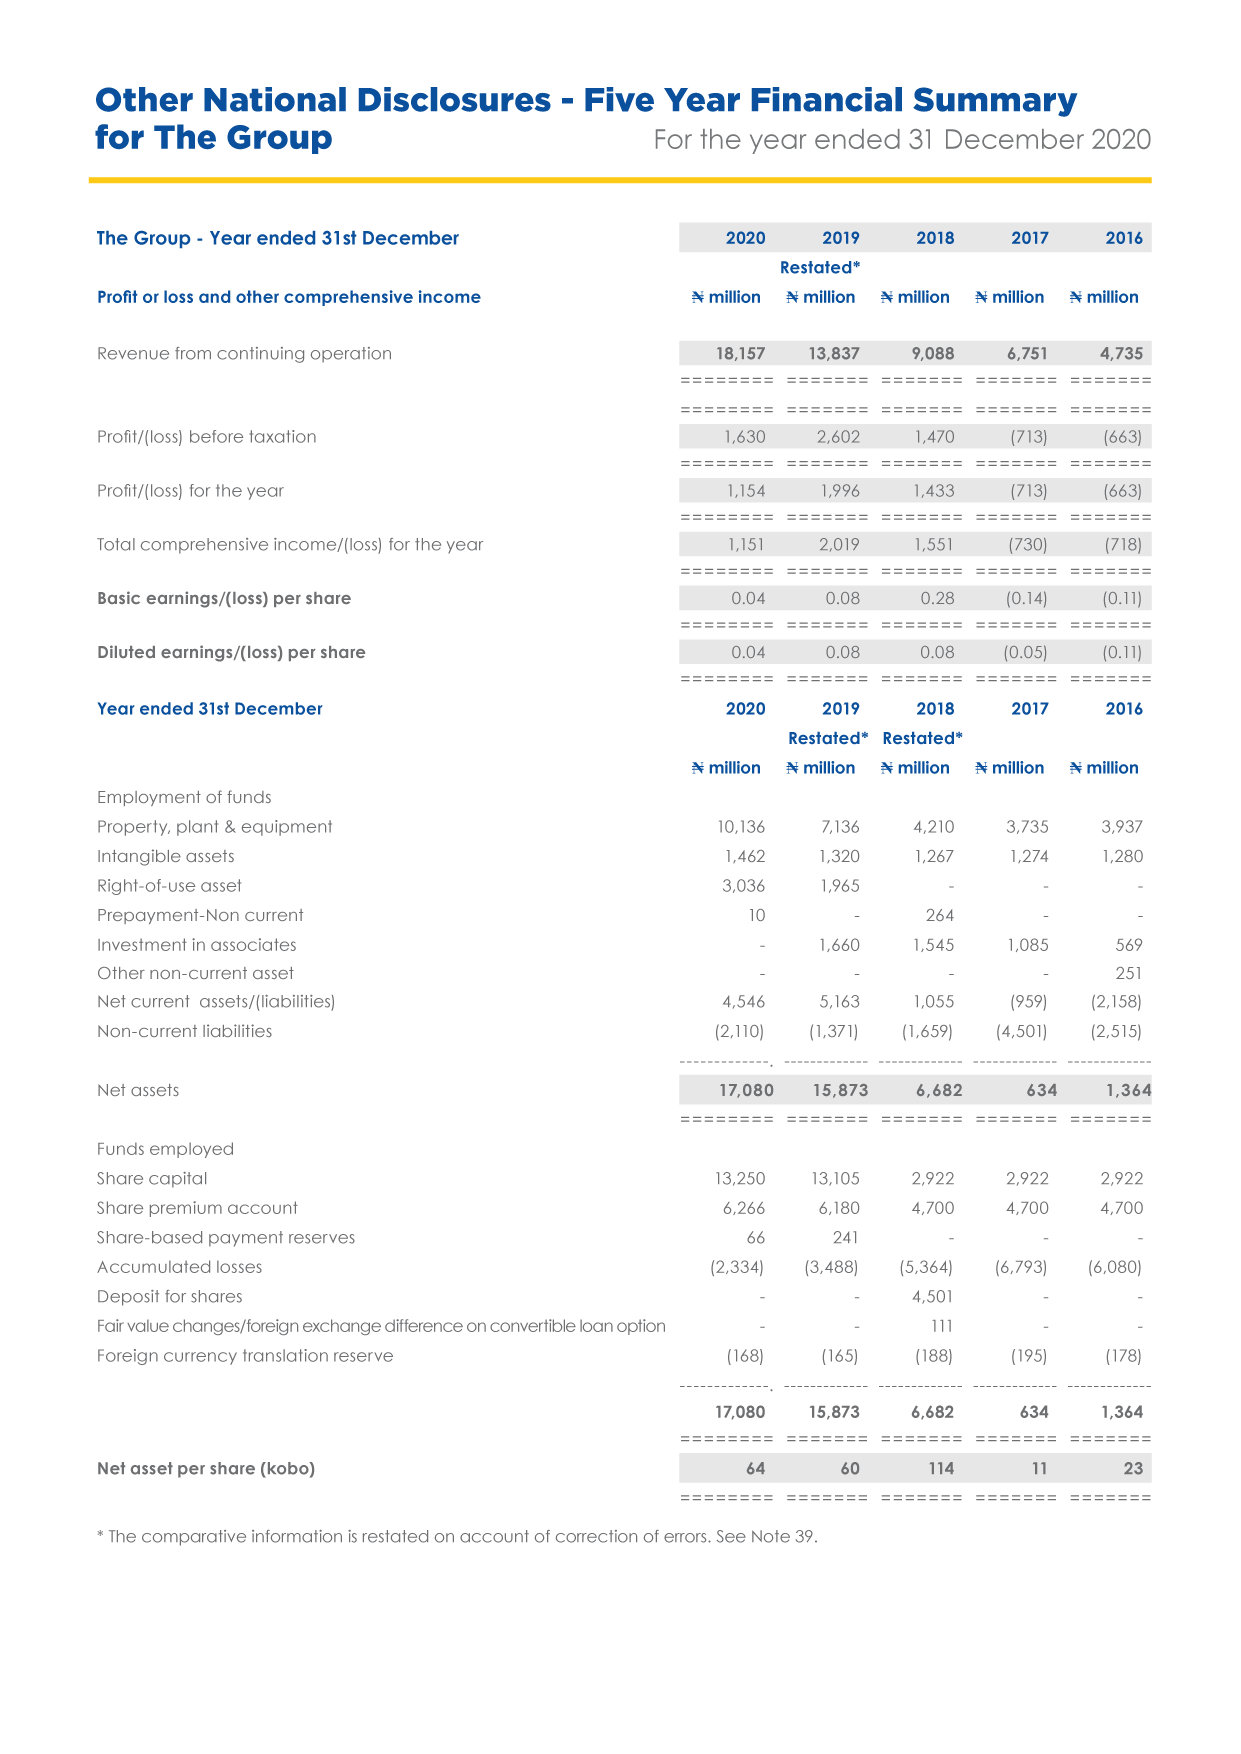 Food Concepts - Five Year Financial Summary for the Group